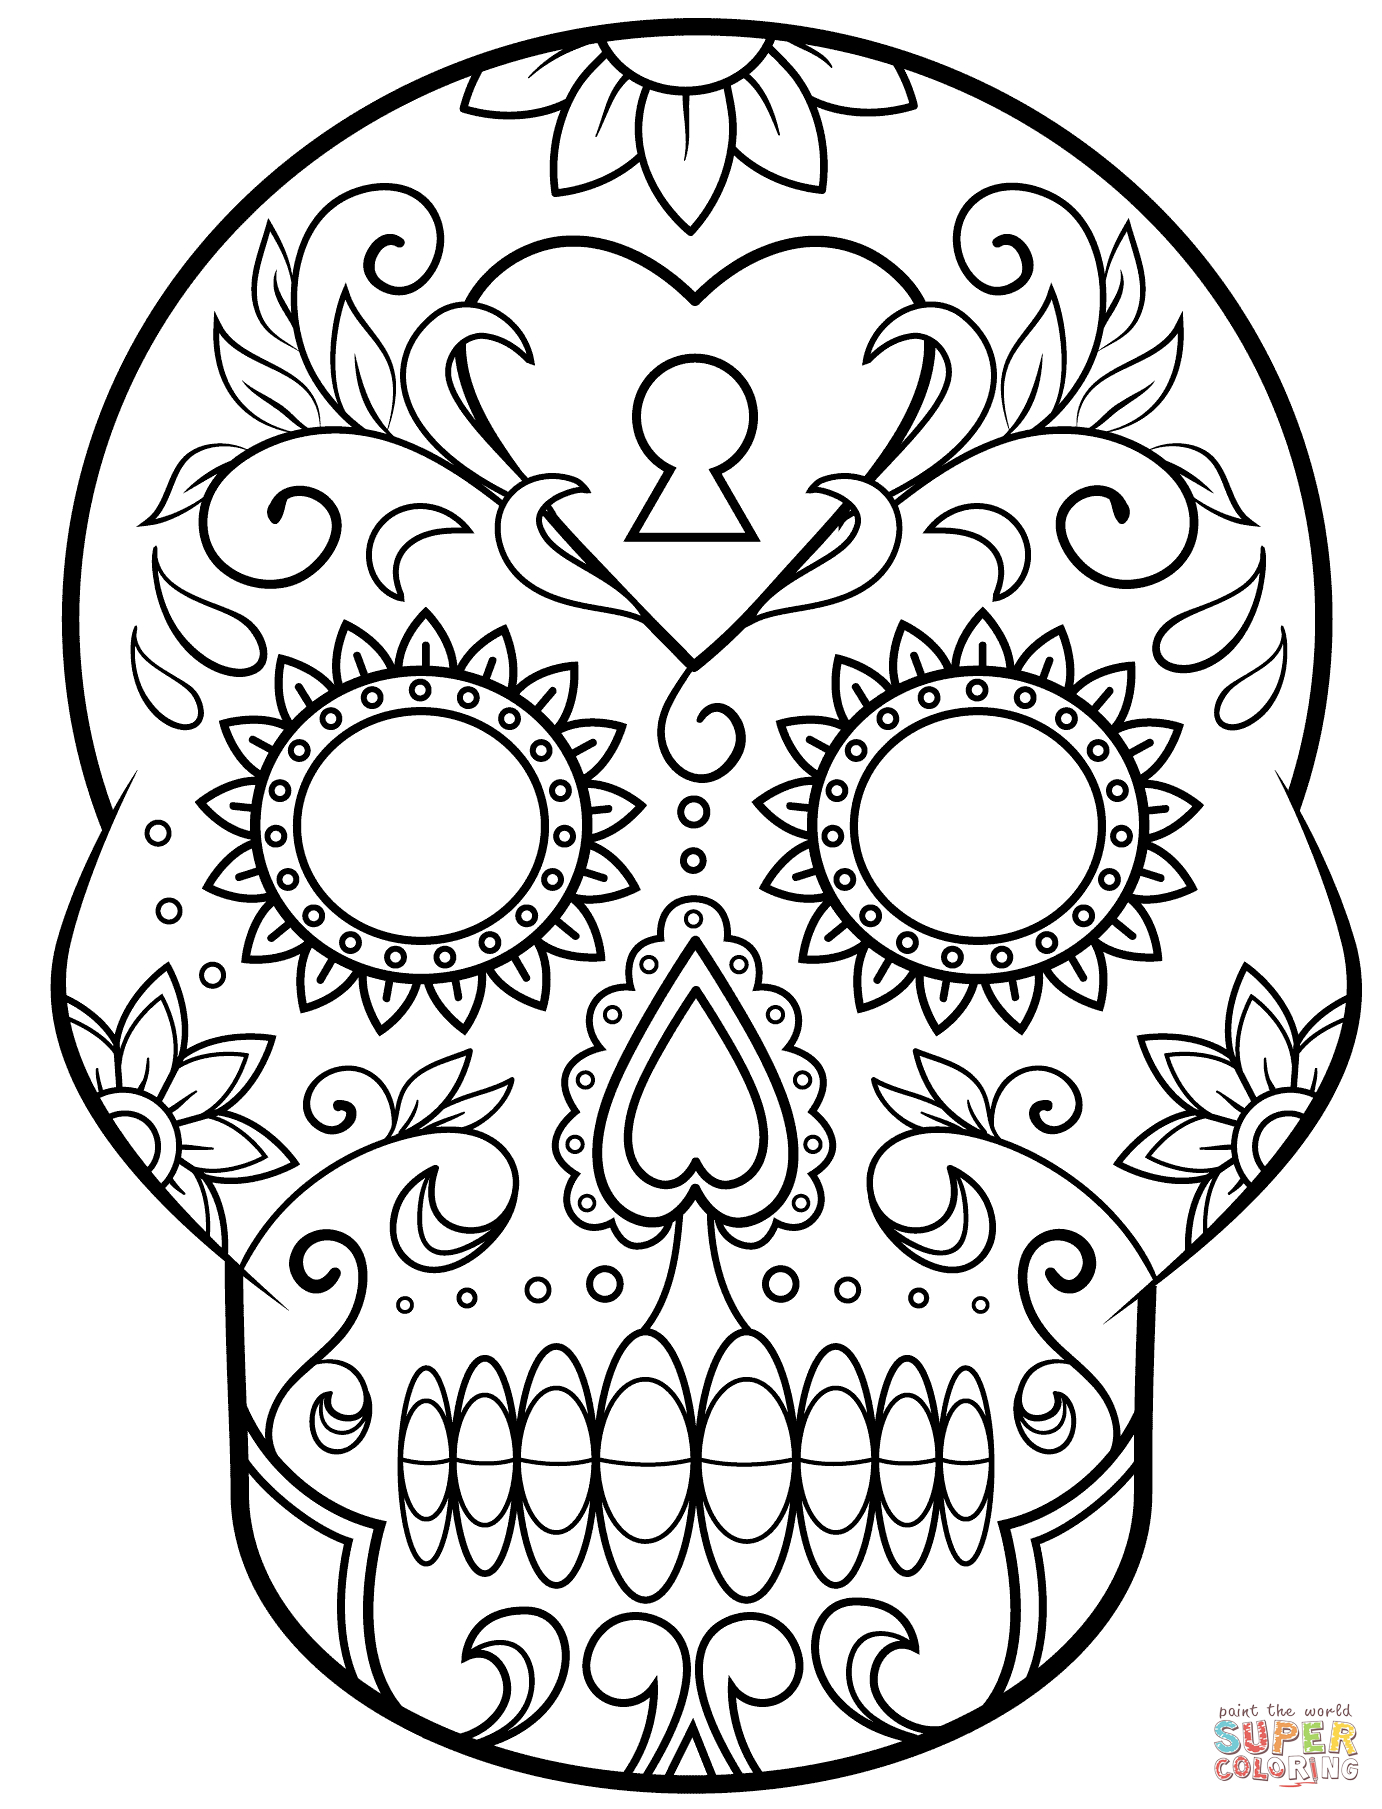 Day Of The Dead Sugar Skull Coloring Page | Free Printable - Free Printable Day Of The Dead Worksheets